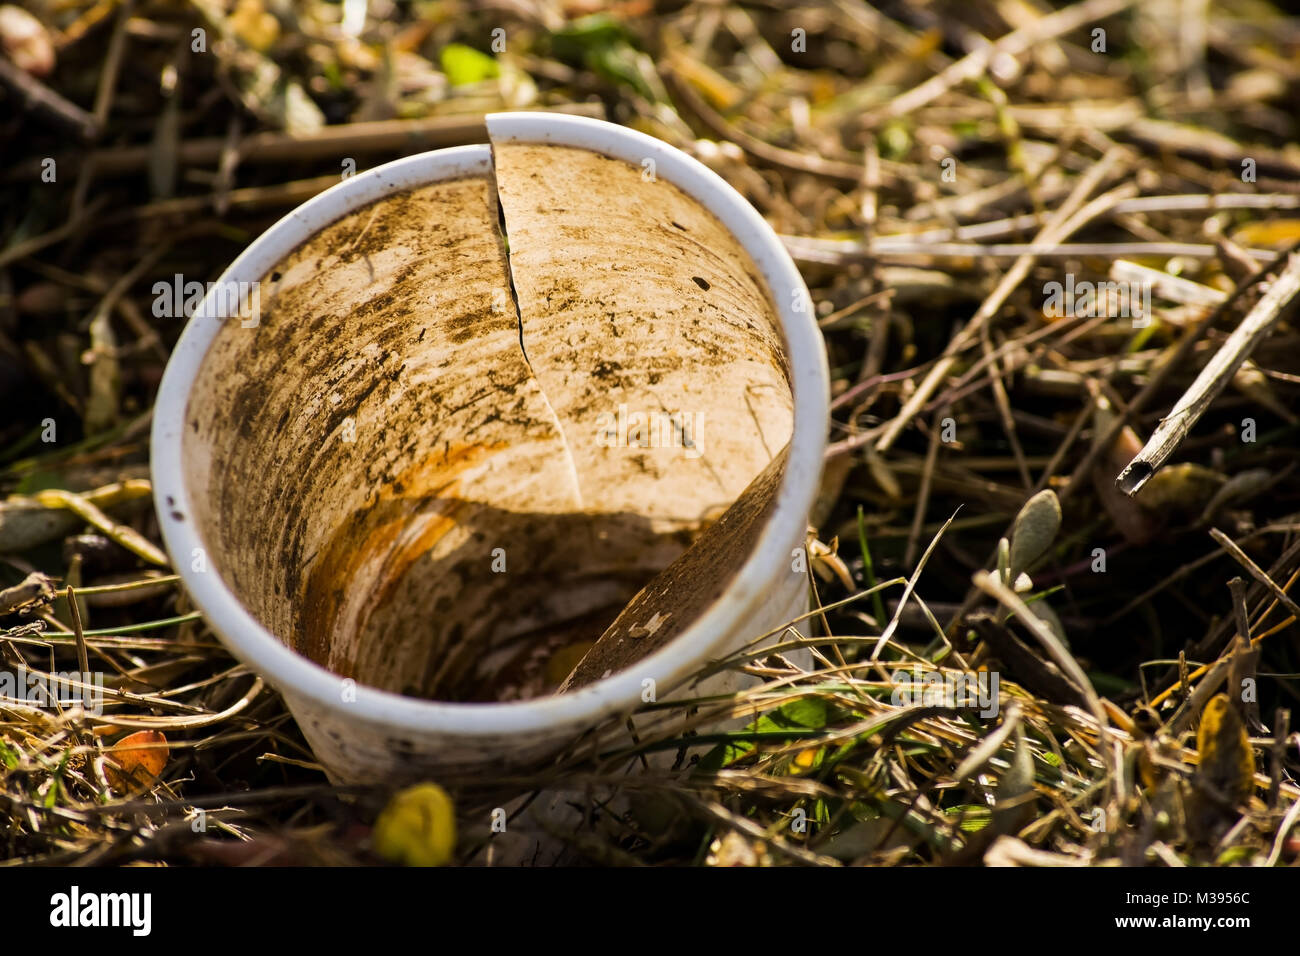 Plastic cup washed up at high tide then left behind, part of a project that I'm doing looking at pollution and - Stock Image